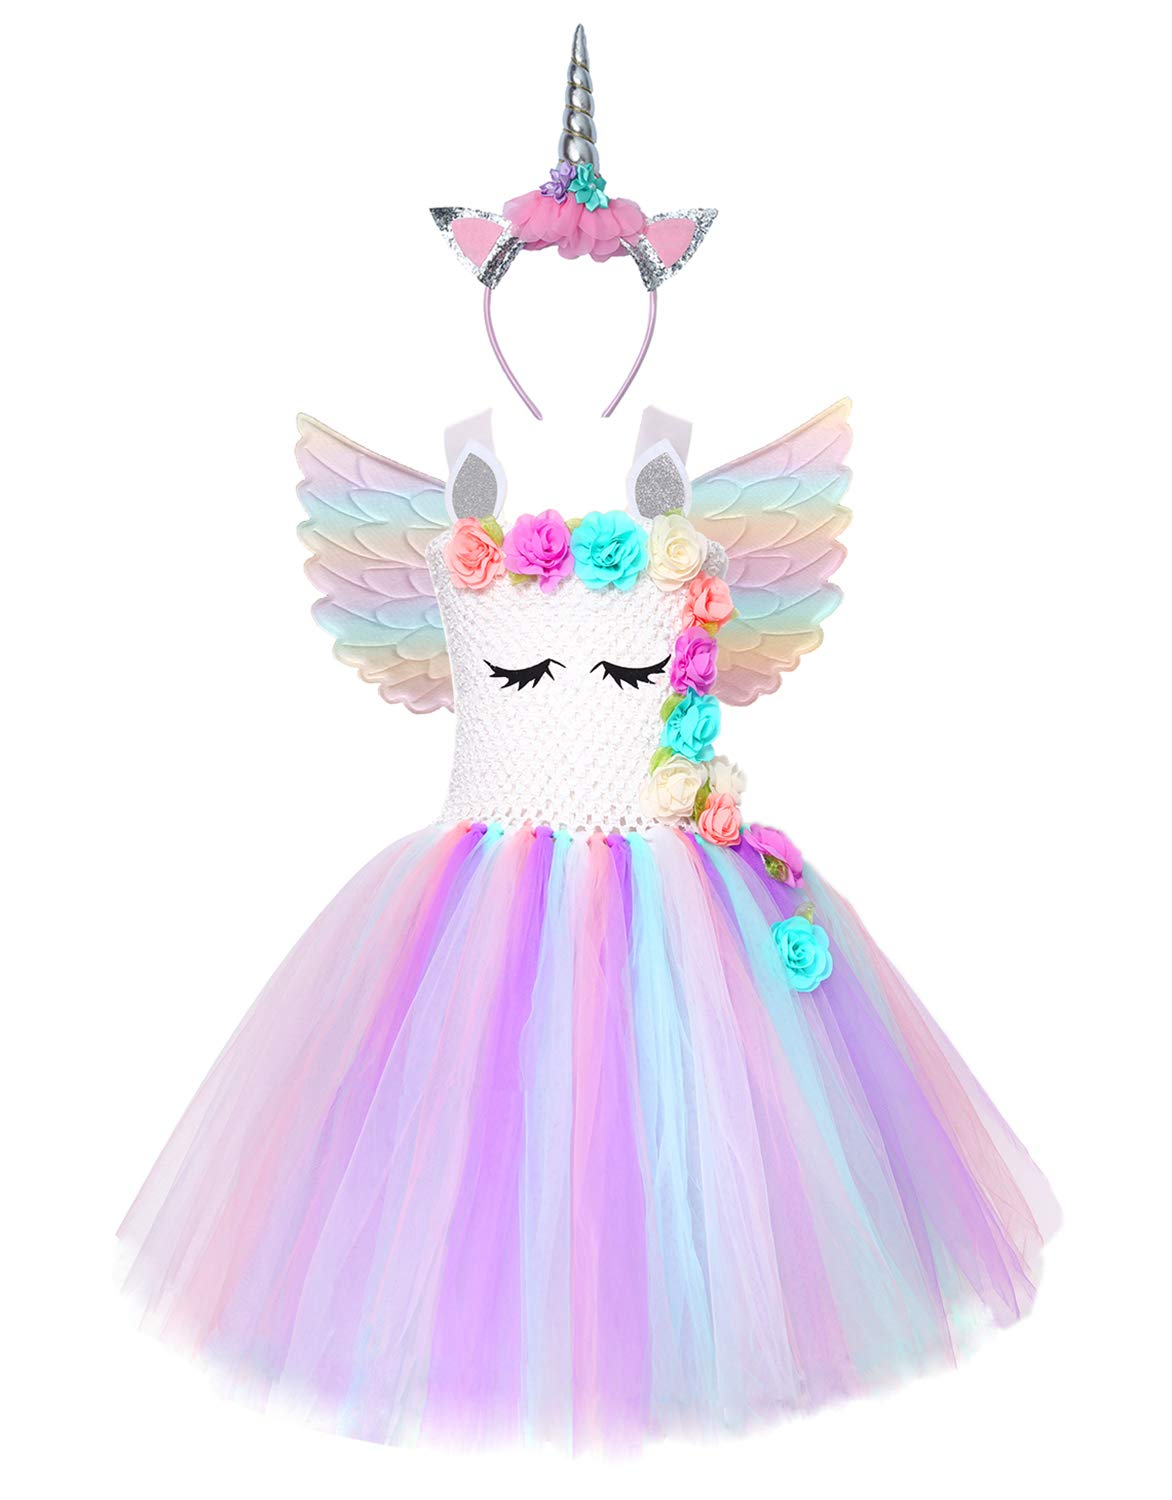 Cuteshower Girl Unicorn Costume, Baby Unicorn Tutu Dress Outfit Princess Party Costumes with Headband and Wings 2